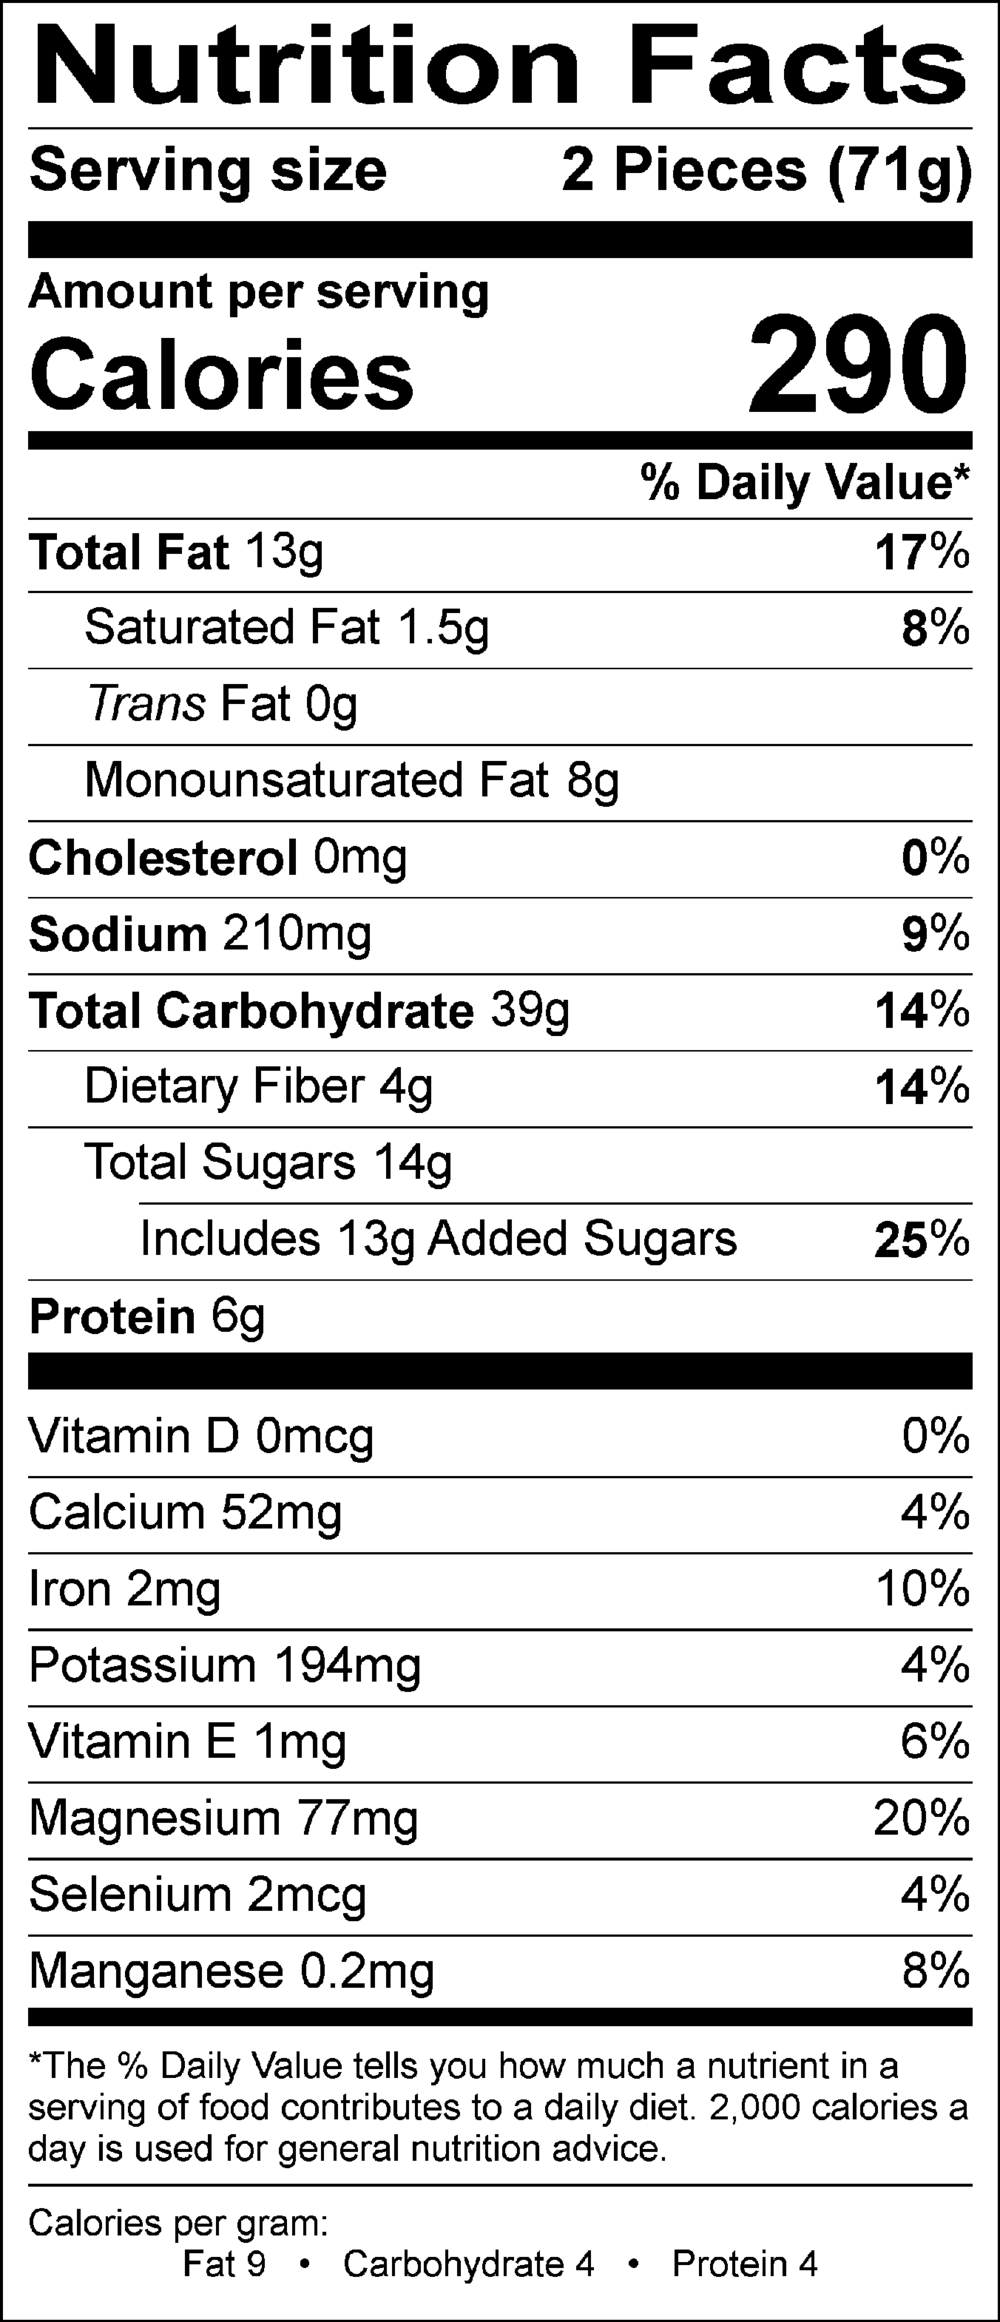 Crumb Bark Nutrition Facts.png